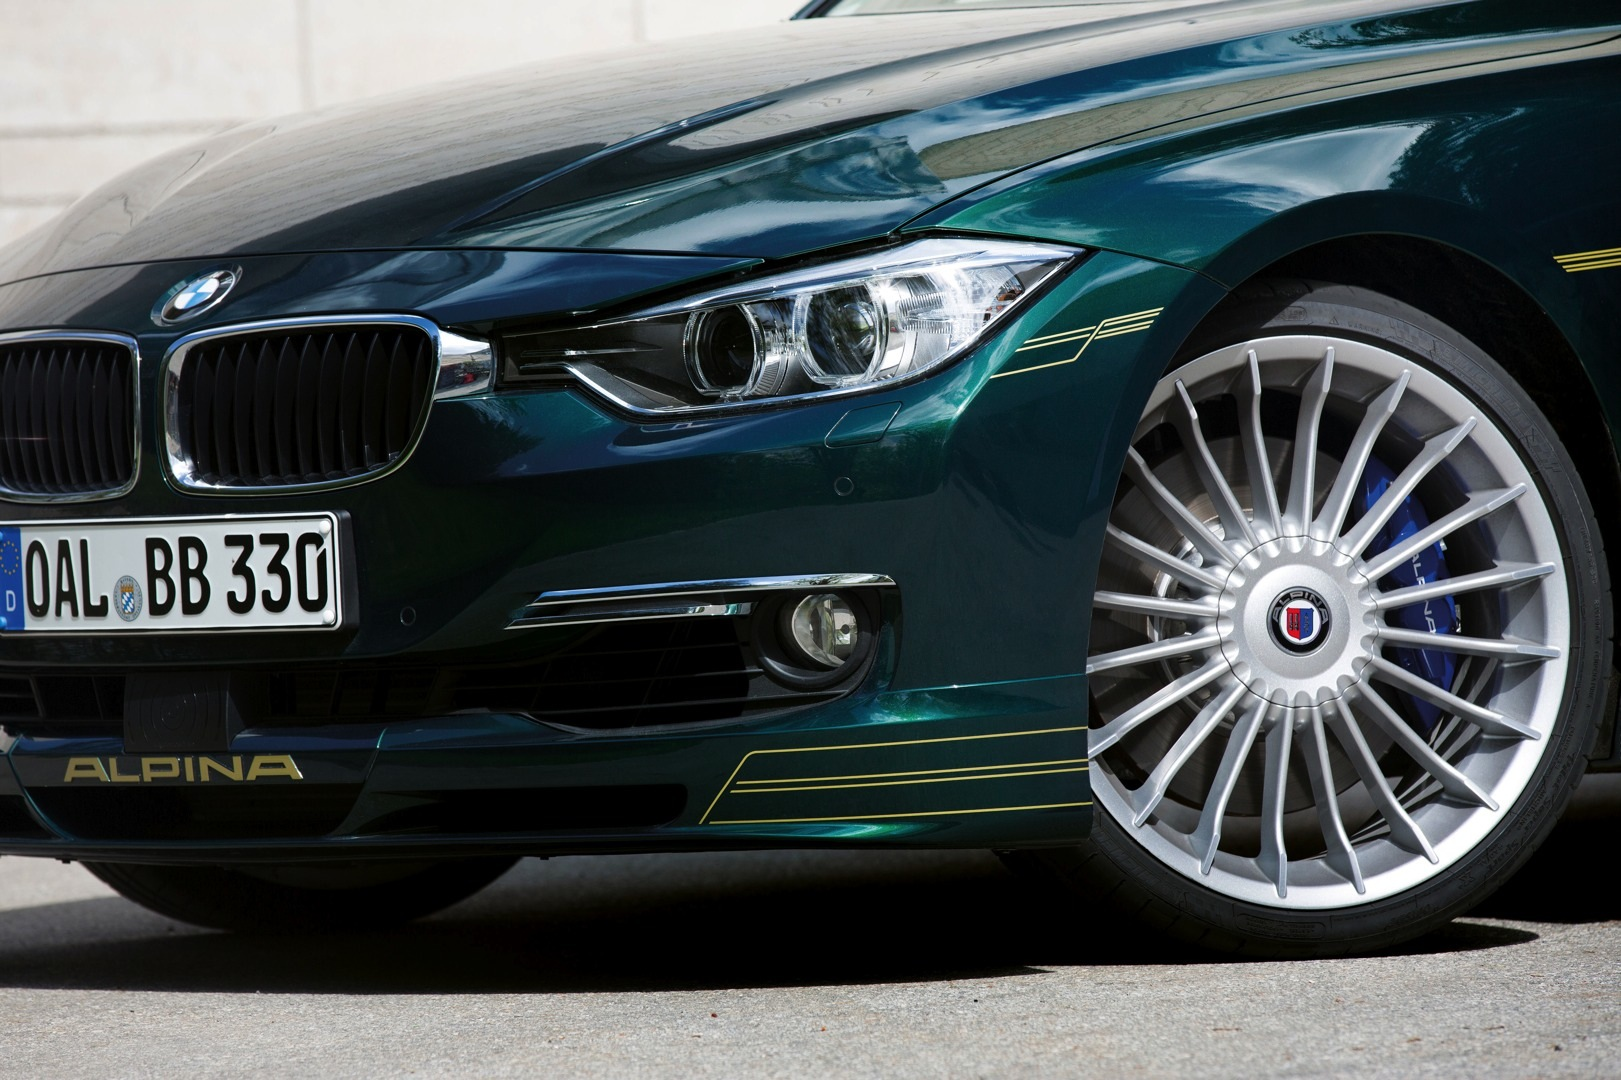 Alpina D3 Biturbo Launched in the UK - autoevolution